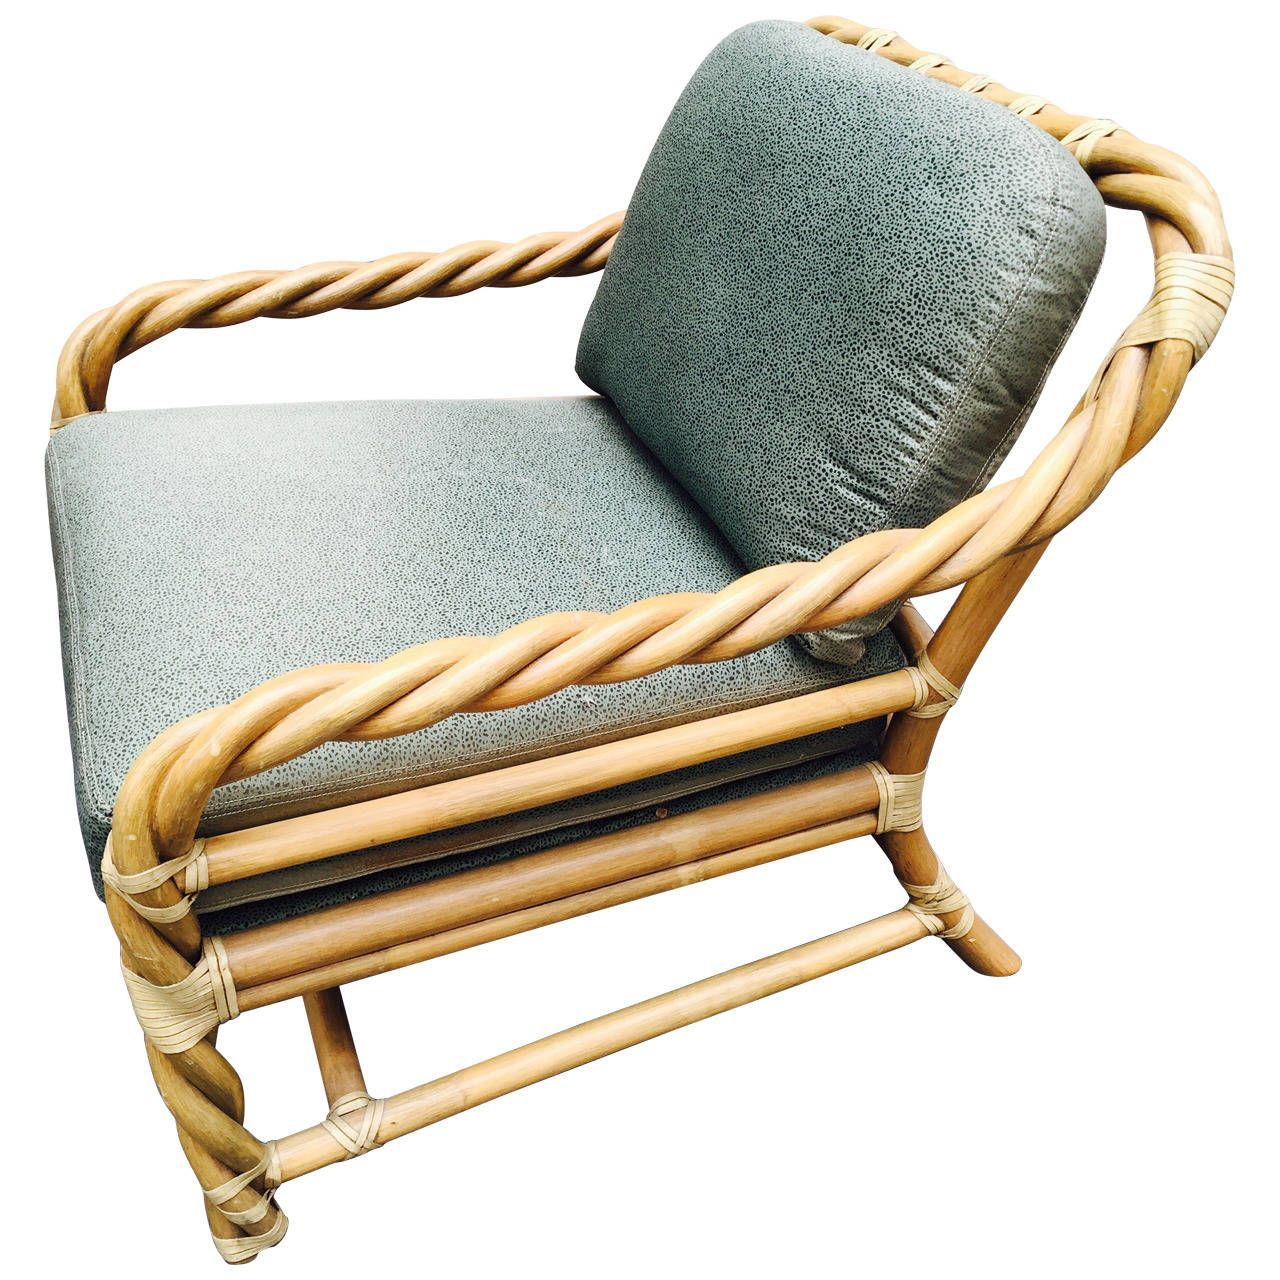 McGuire Twisted Rattan Mid Century Lounge Chair | See More Antique And  Modern Lounge Chairs At Https://www.1stdibs.com/furniture/seating/lounge  Chairs